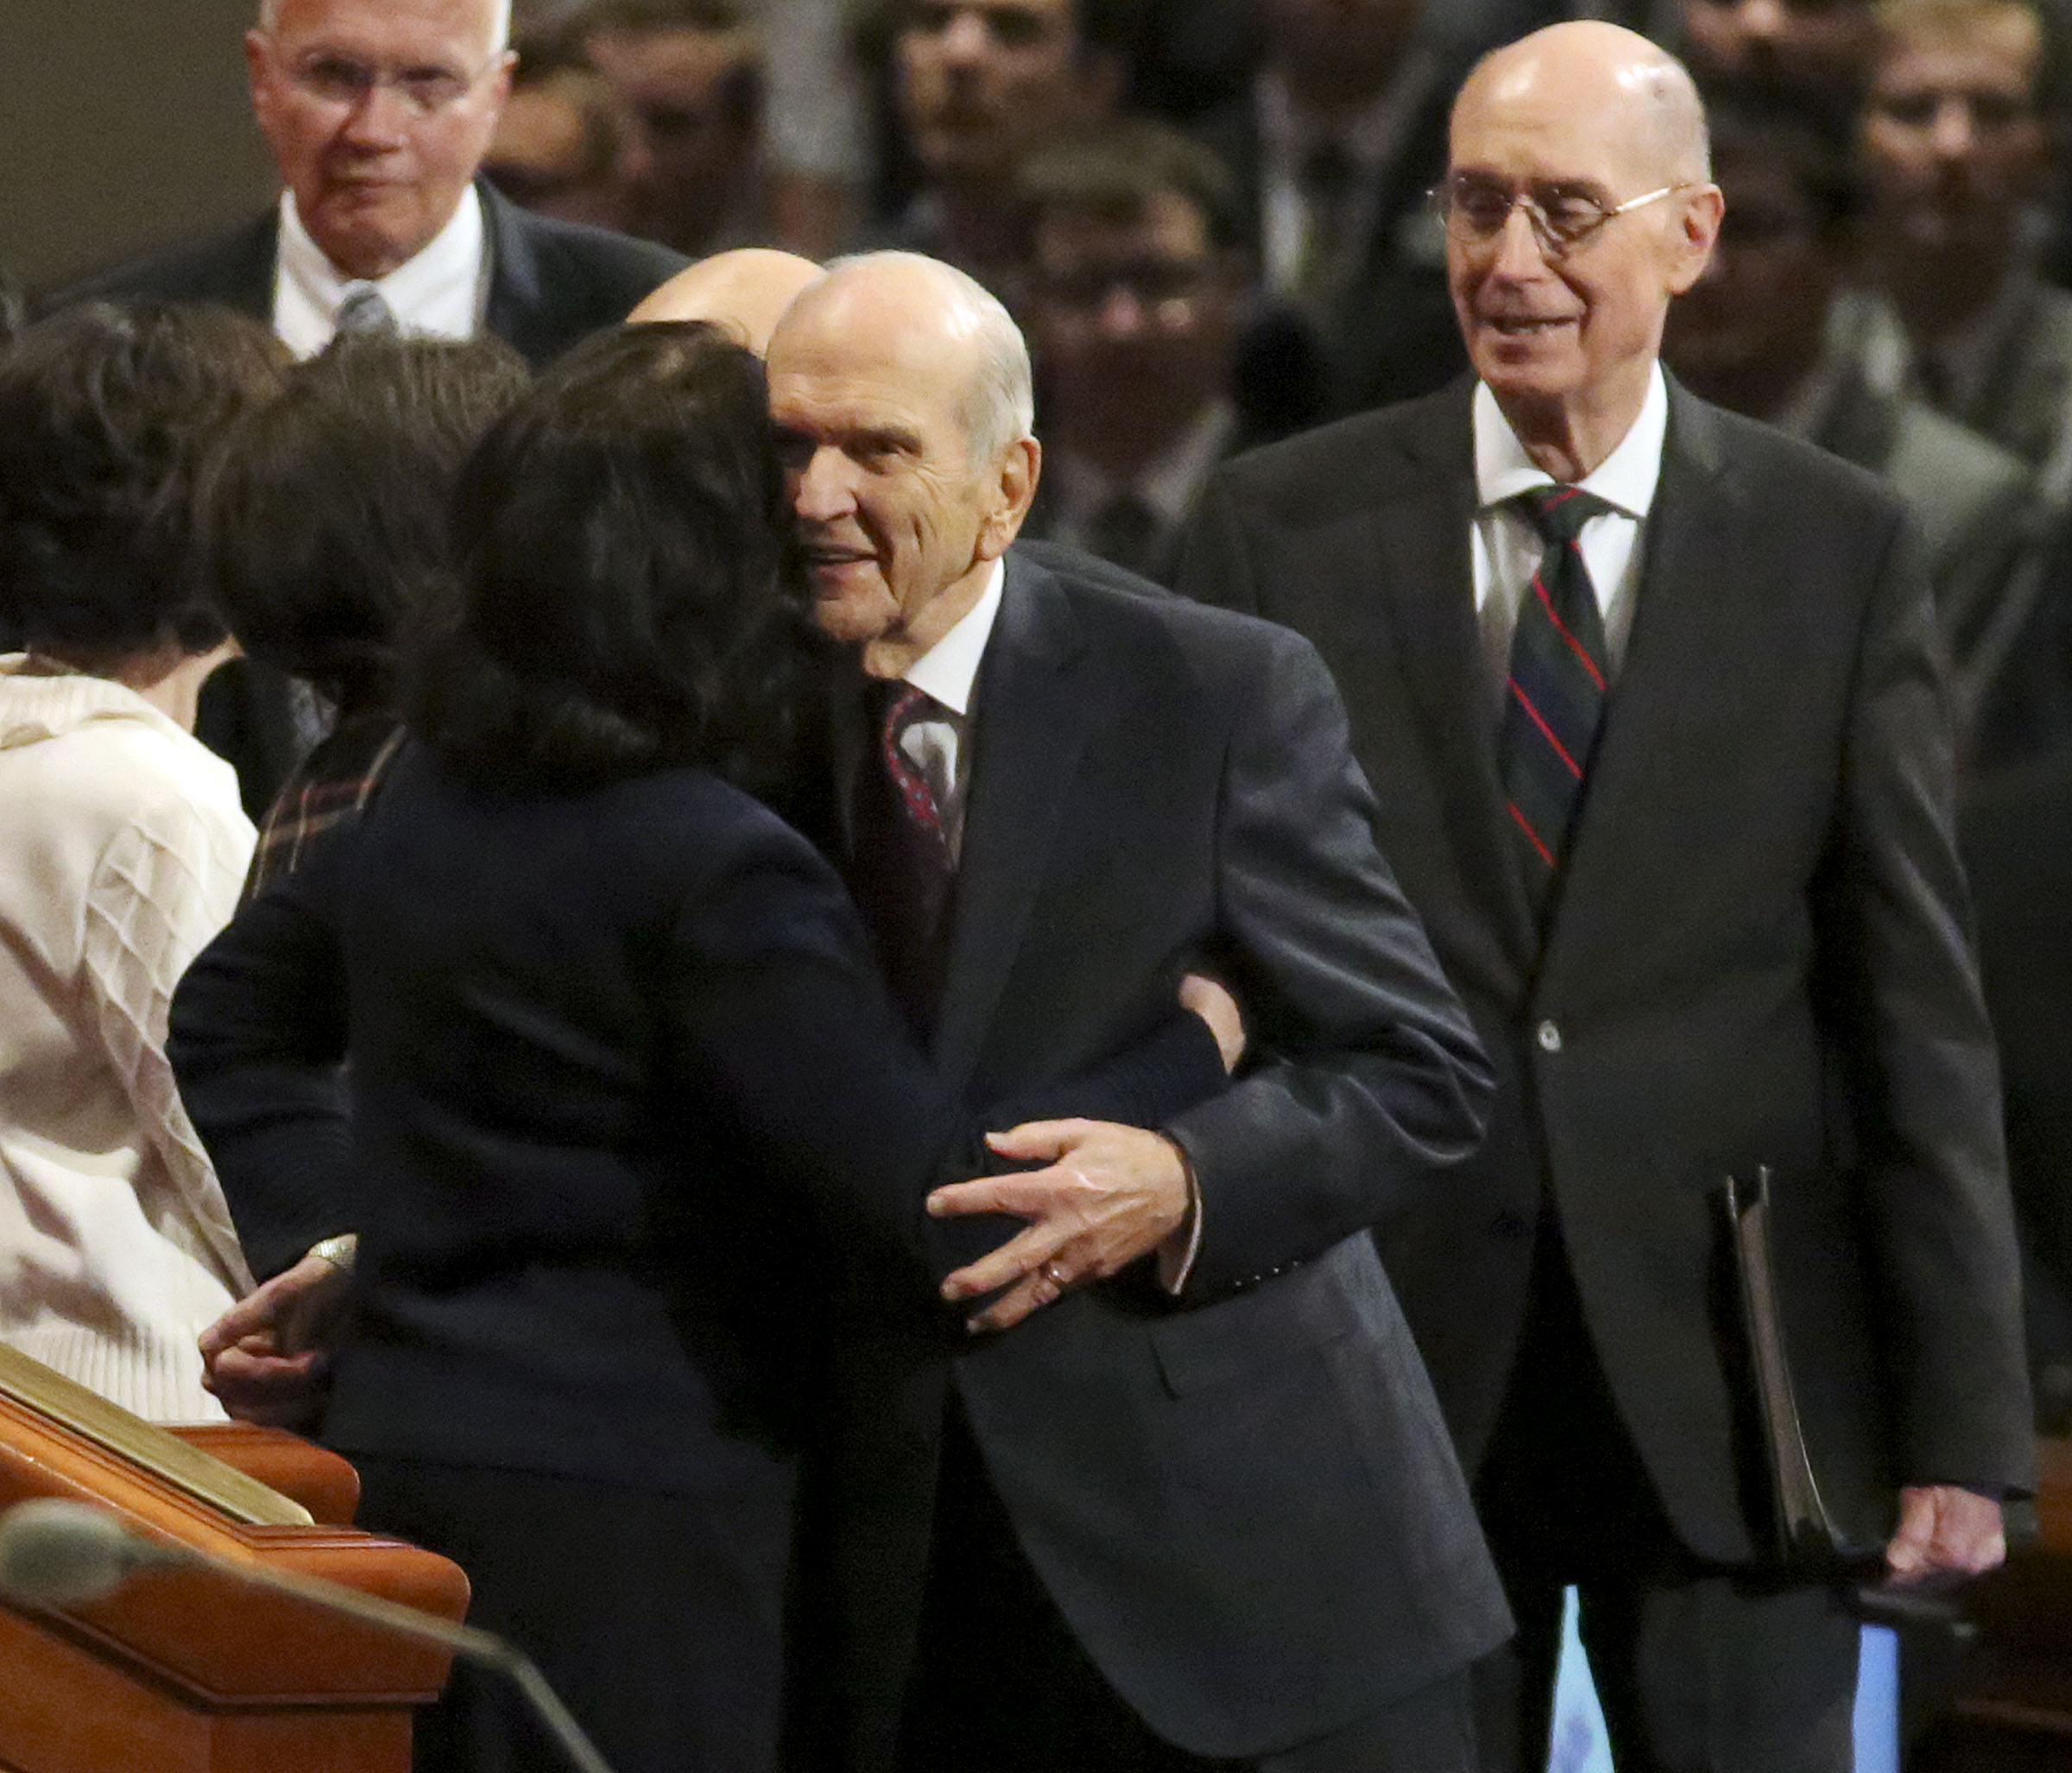 President Russell M. Nelson hugs his wife, Sister Wendy Nelson, as he enters the Sunday afternoon session of the 188th Semiannual General Conference of The Church of Jesus Christ of Latter-day Saints in the Conference Center in downtown Salt Lake City on Sunday, Oct. 7, 2018.